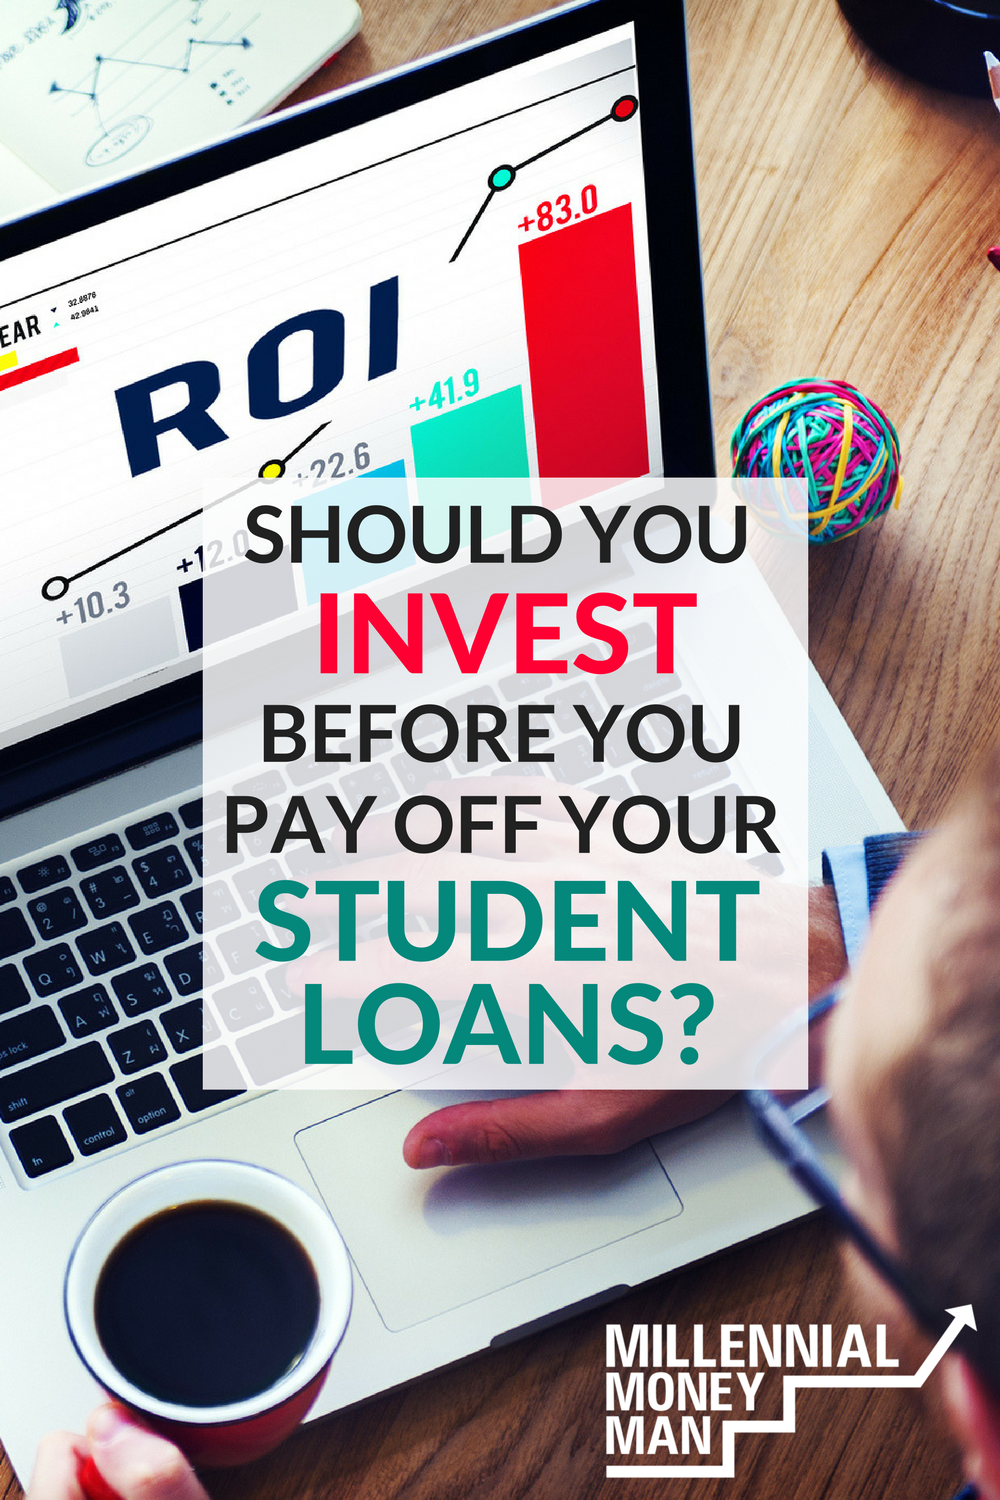 Should You Invest Before You Pay Off Your Student Loans Top Blogs Pinterest Viral Board Student Loans Student Loan Forgiveness Investing Money